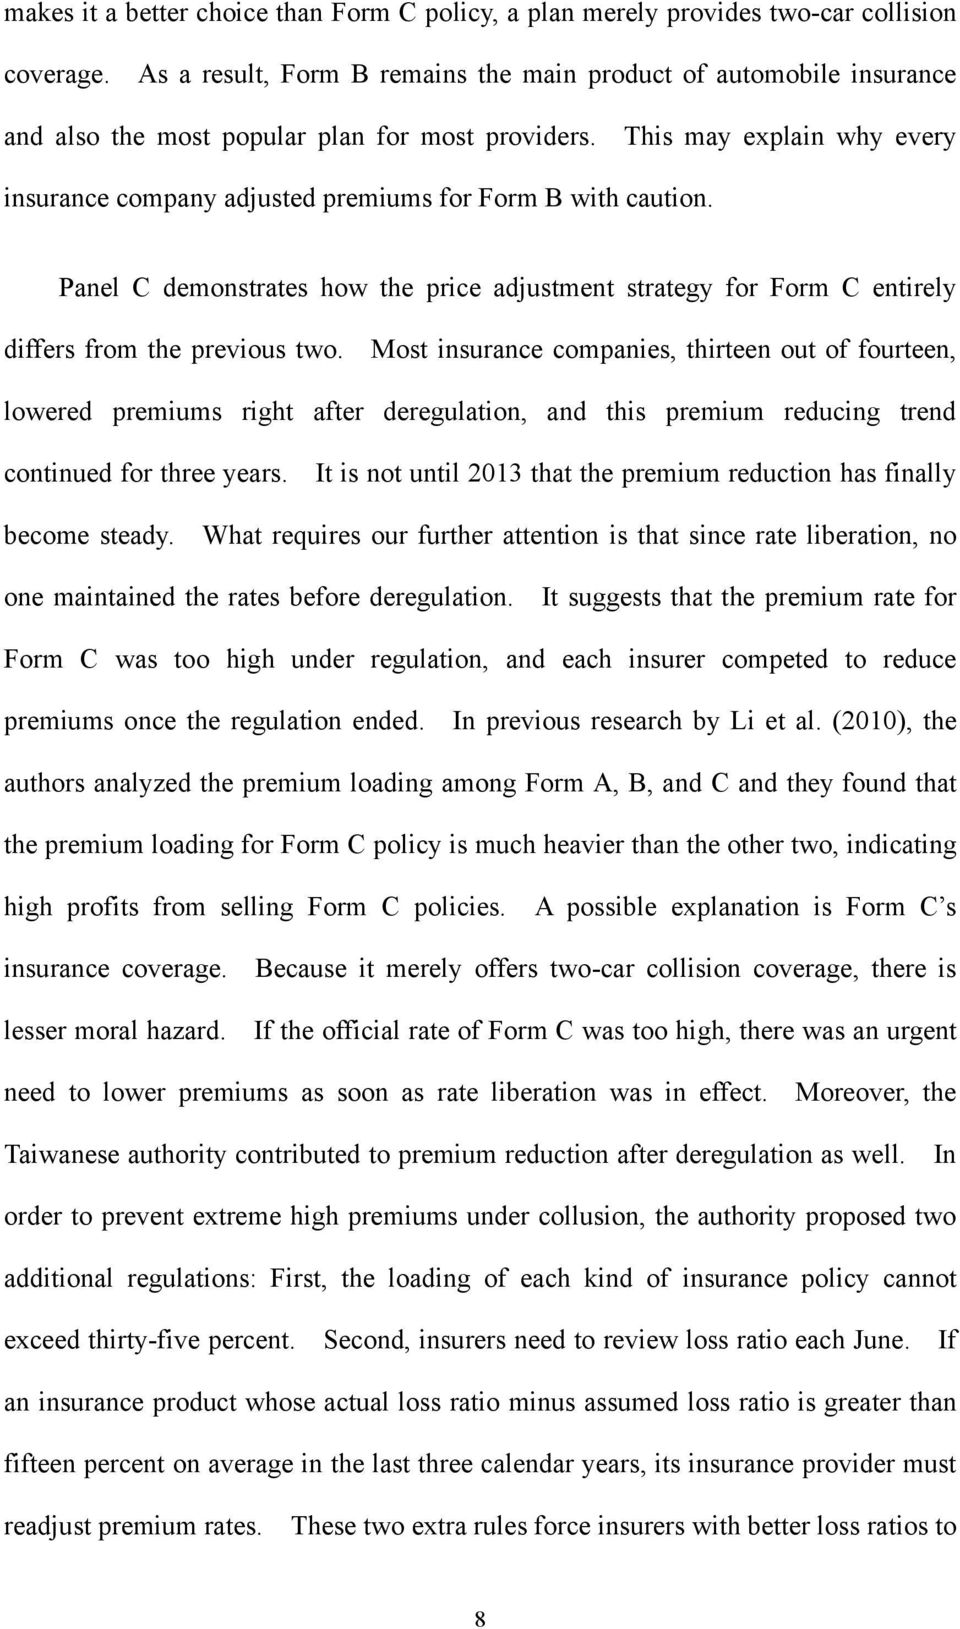 This may explain why every insurance company adjusted premiums for Form B with caution. Panel C demonstrates how the price adjustment strategy for Form C entirely differs from the previous two.